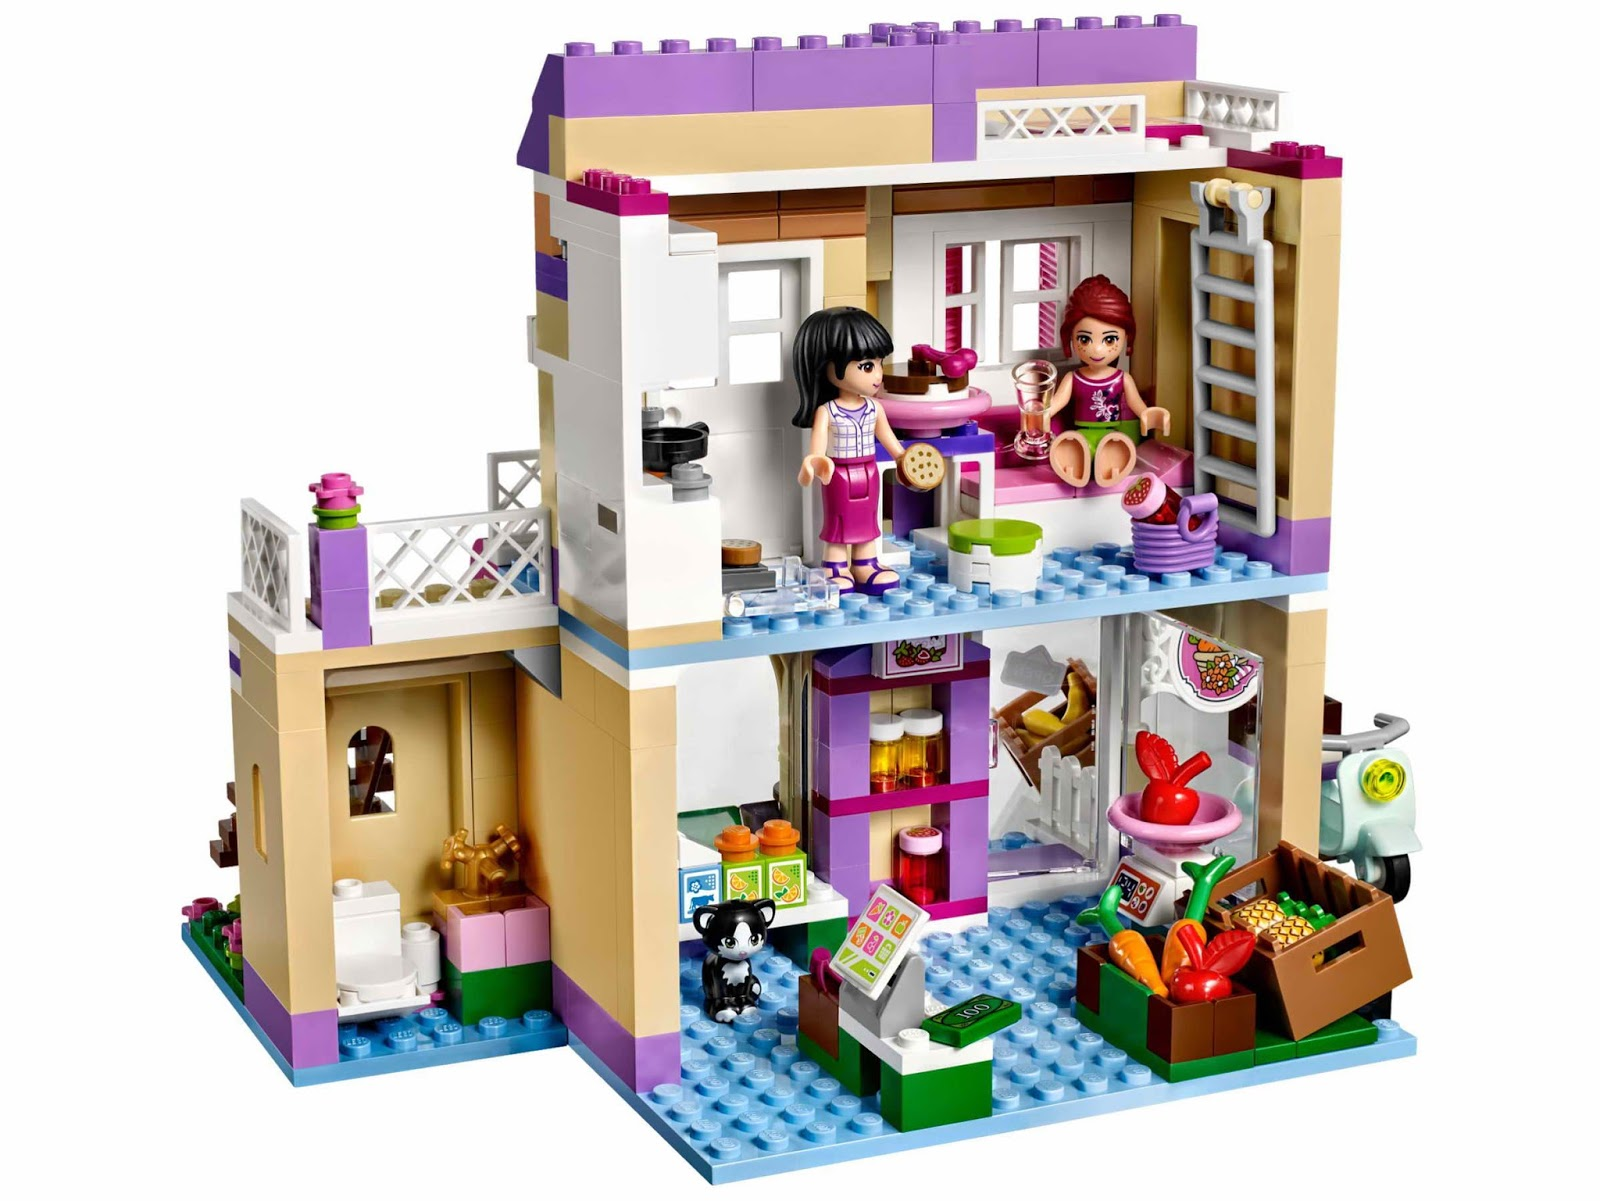 Brick friends lego 41108 heartlake food market for Lego friends salon de coiffure